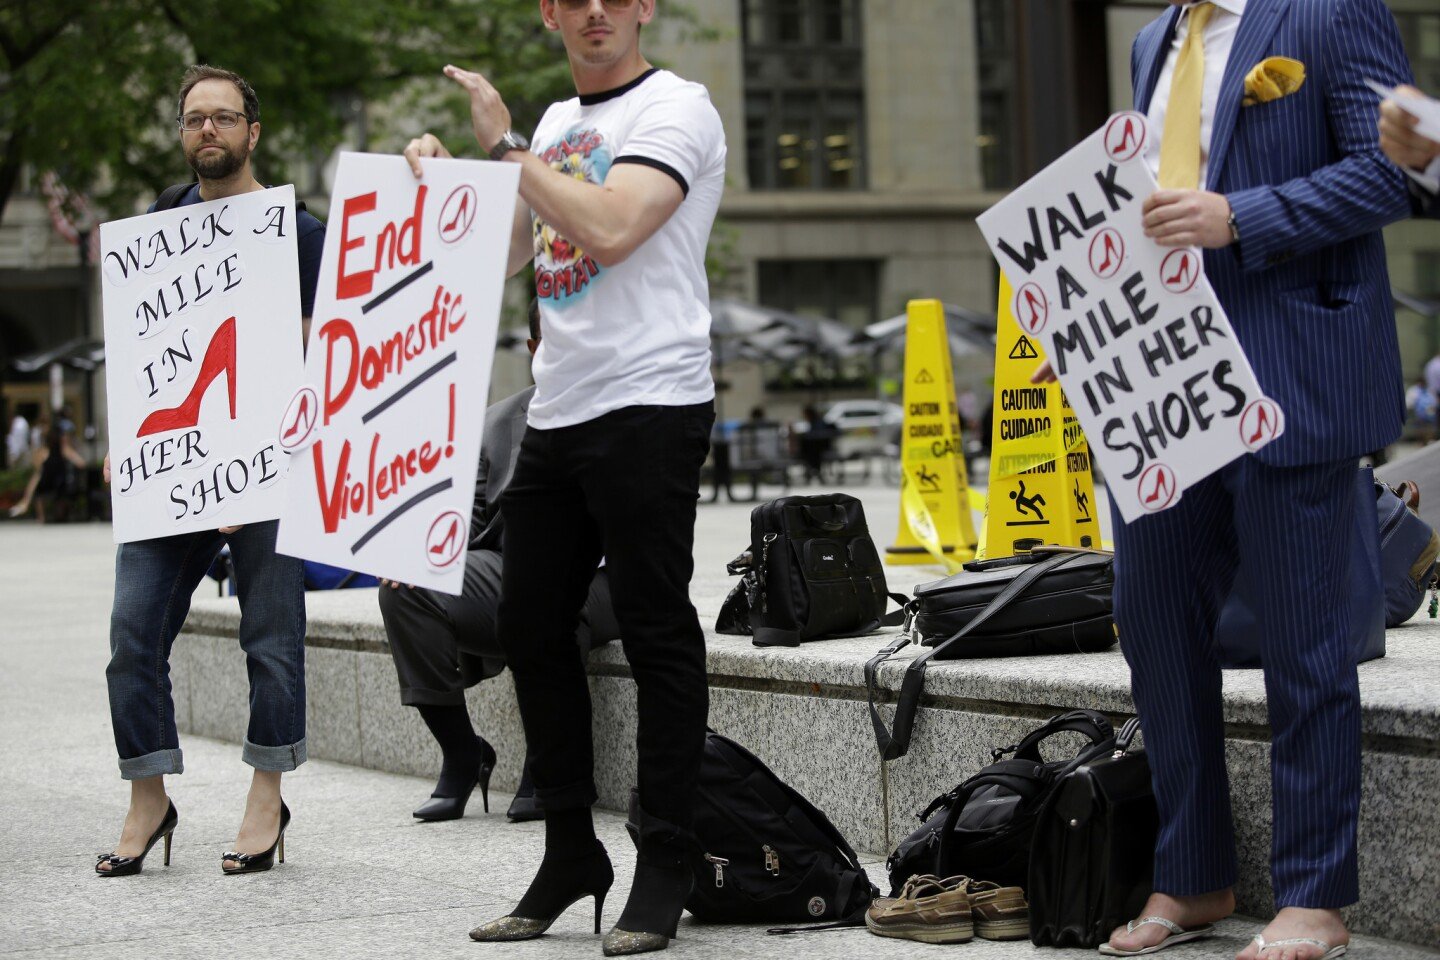 Chicago's Walk a Mile in Her Shoes